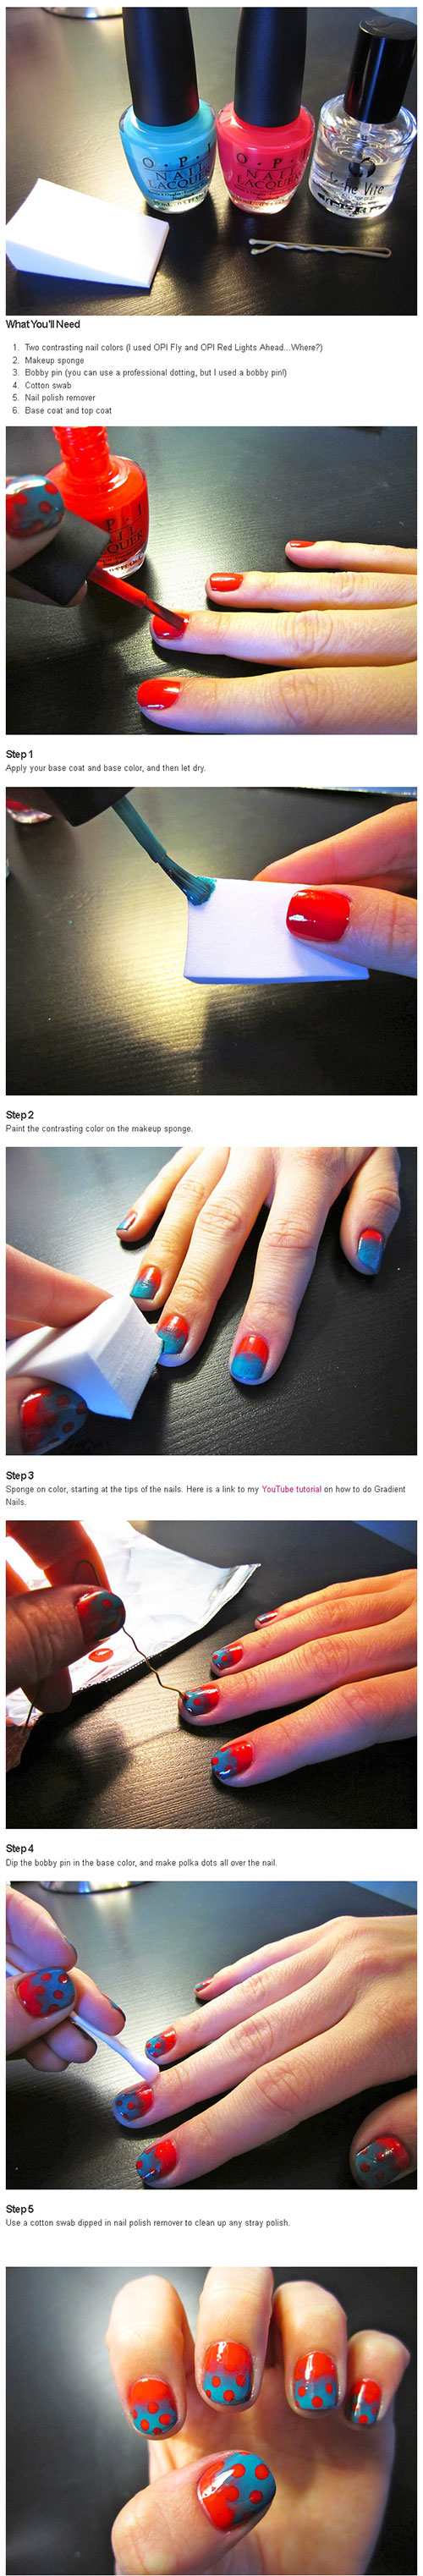 20-Simple-Step-By-Step-Polka-Dots-Nail-Art-Tutorials-For-Beginners-Learners-2014-6